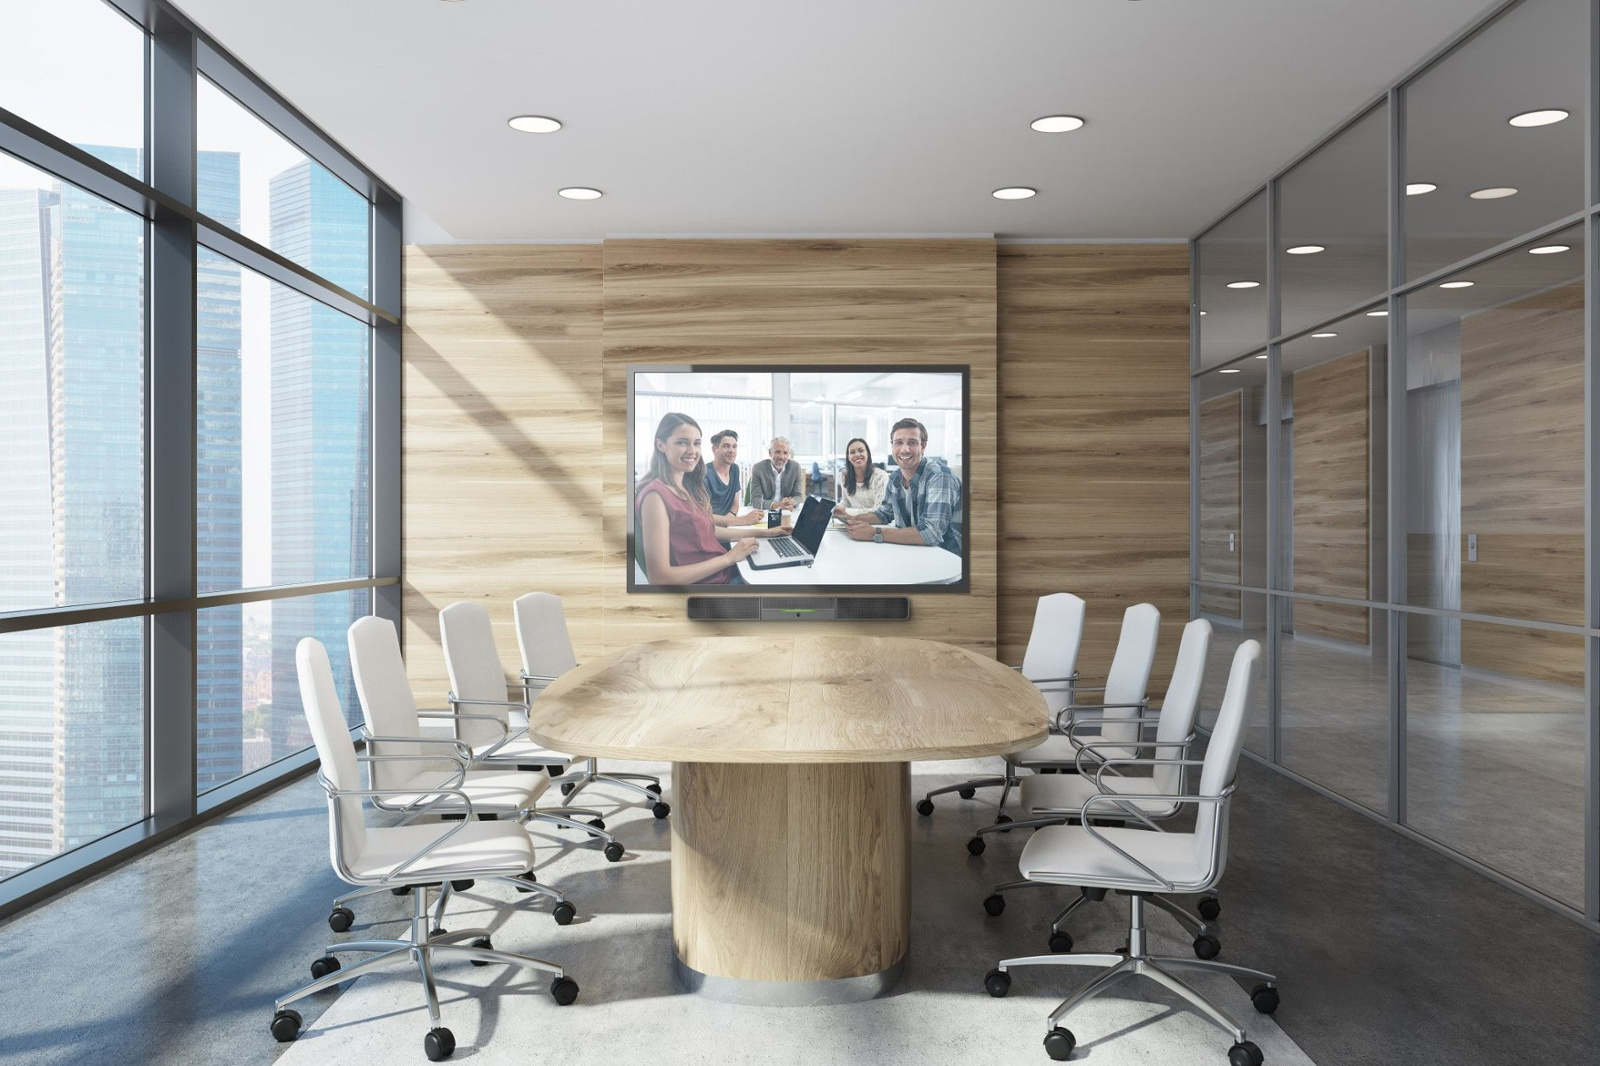 Small video ready meeting room